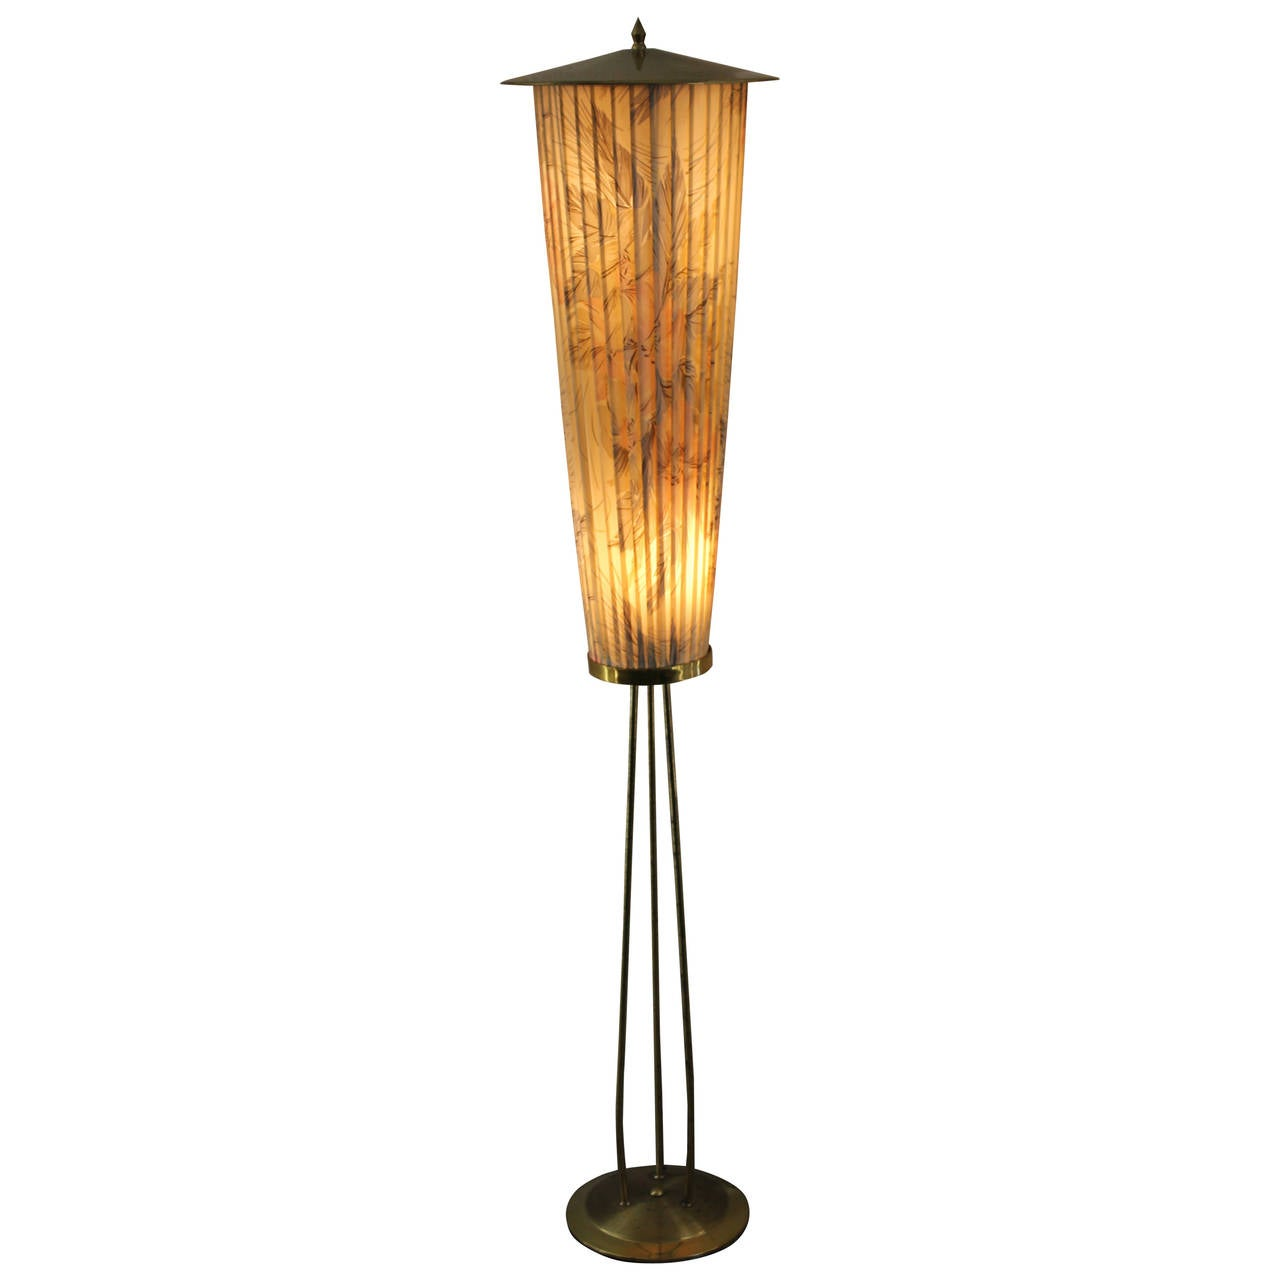 1950s french lantern style floor lamp for sale at 1stdibs for 1950 floor lamp